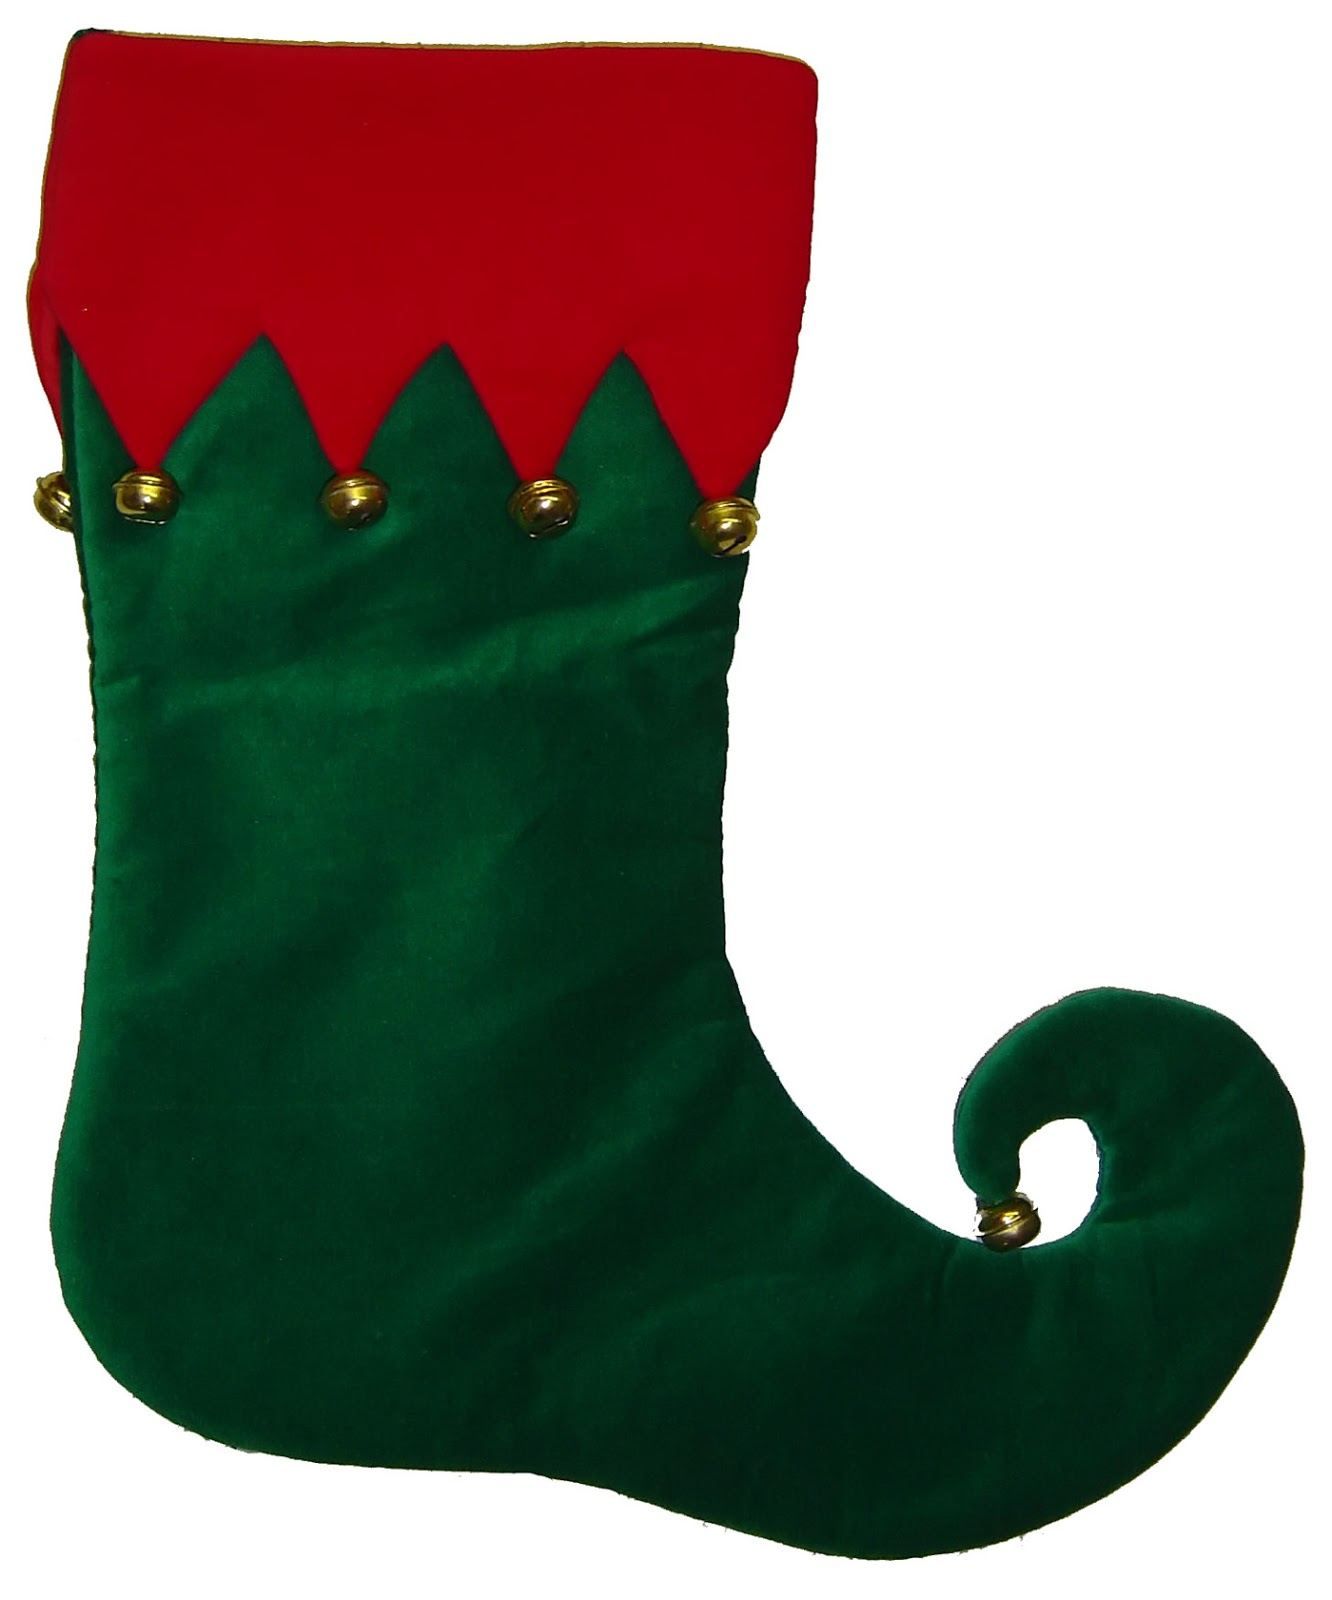 A Femme D 39 Un Certain Age Christmas Stockings For The Man